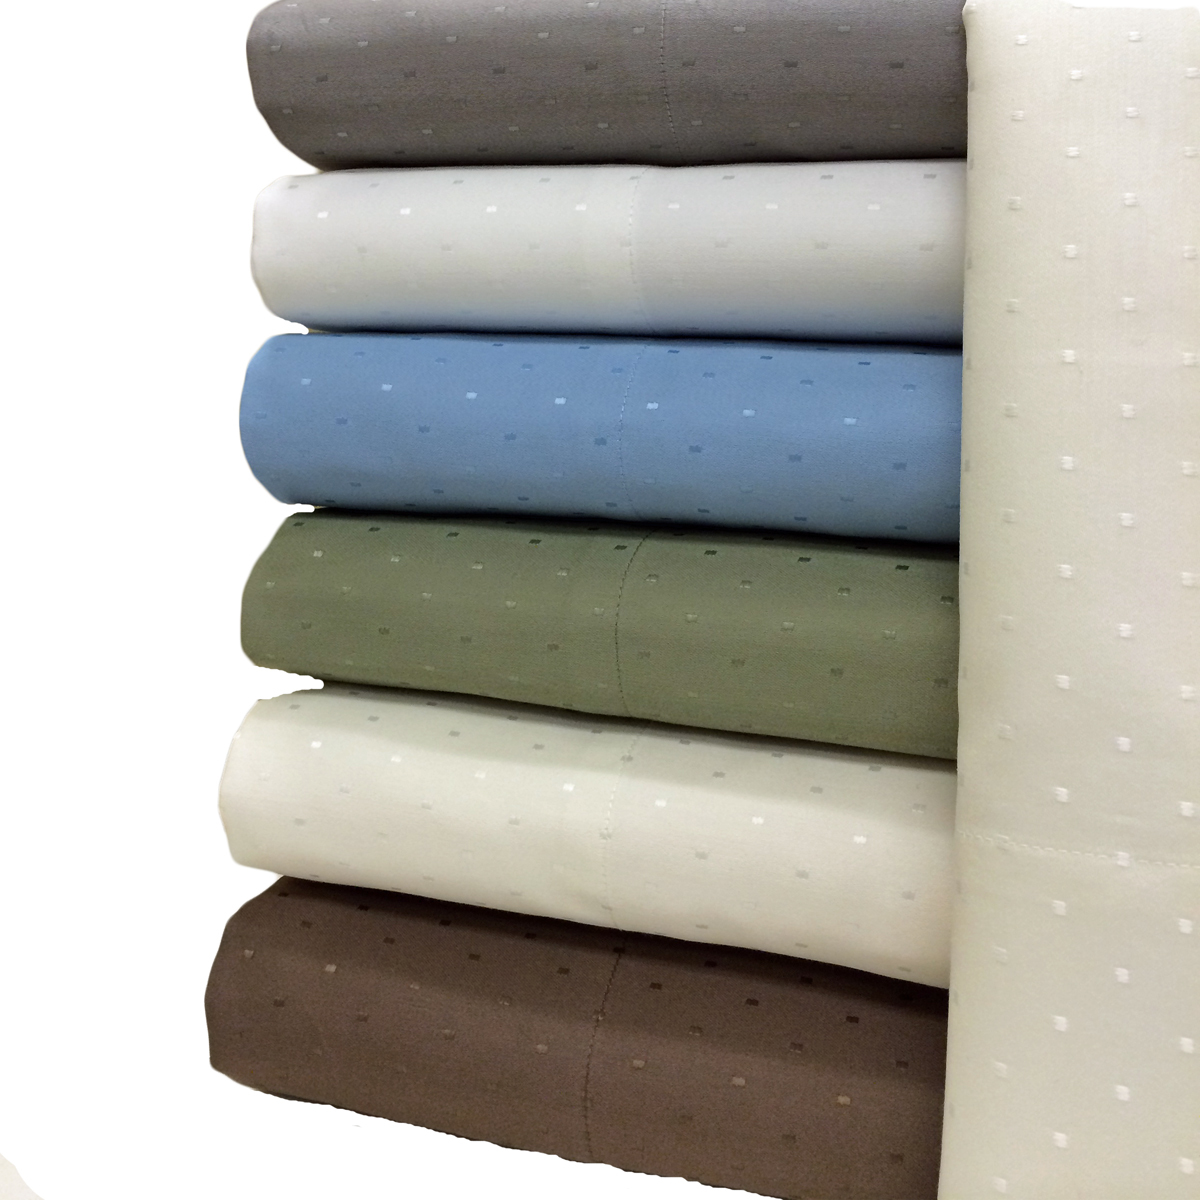 Royal Tradition Woven Dots 600 Thread Count Sheet Sets. Easy Care & Wrinkle Free 600 Thread count sheets & Pillowcases. Cotton /Polyester combine the best of both worlds, cotton for the comfort and polyester for it's strength.